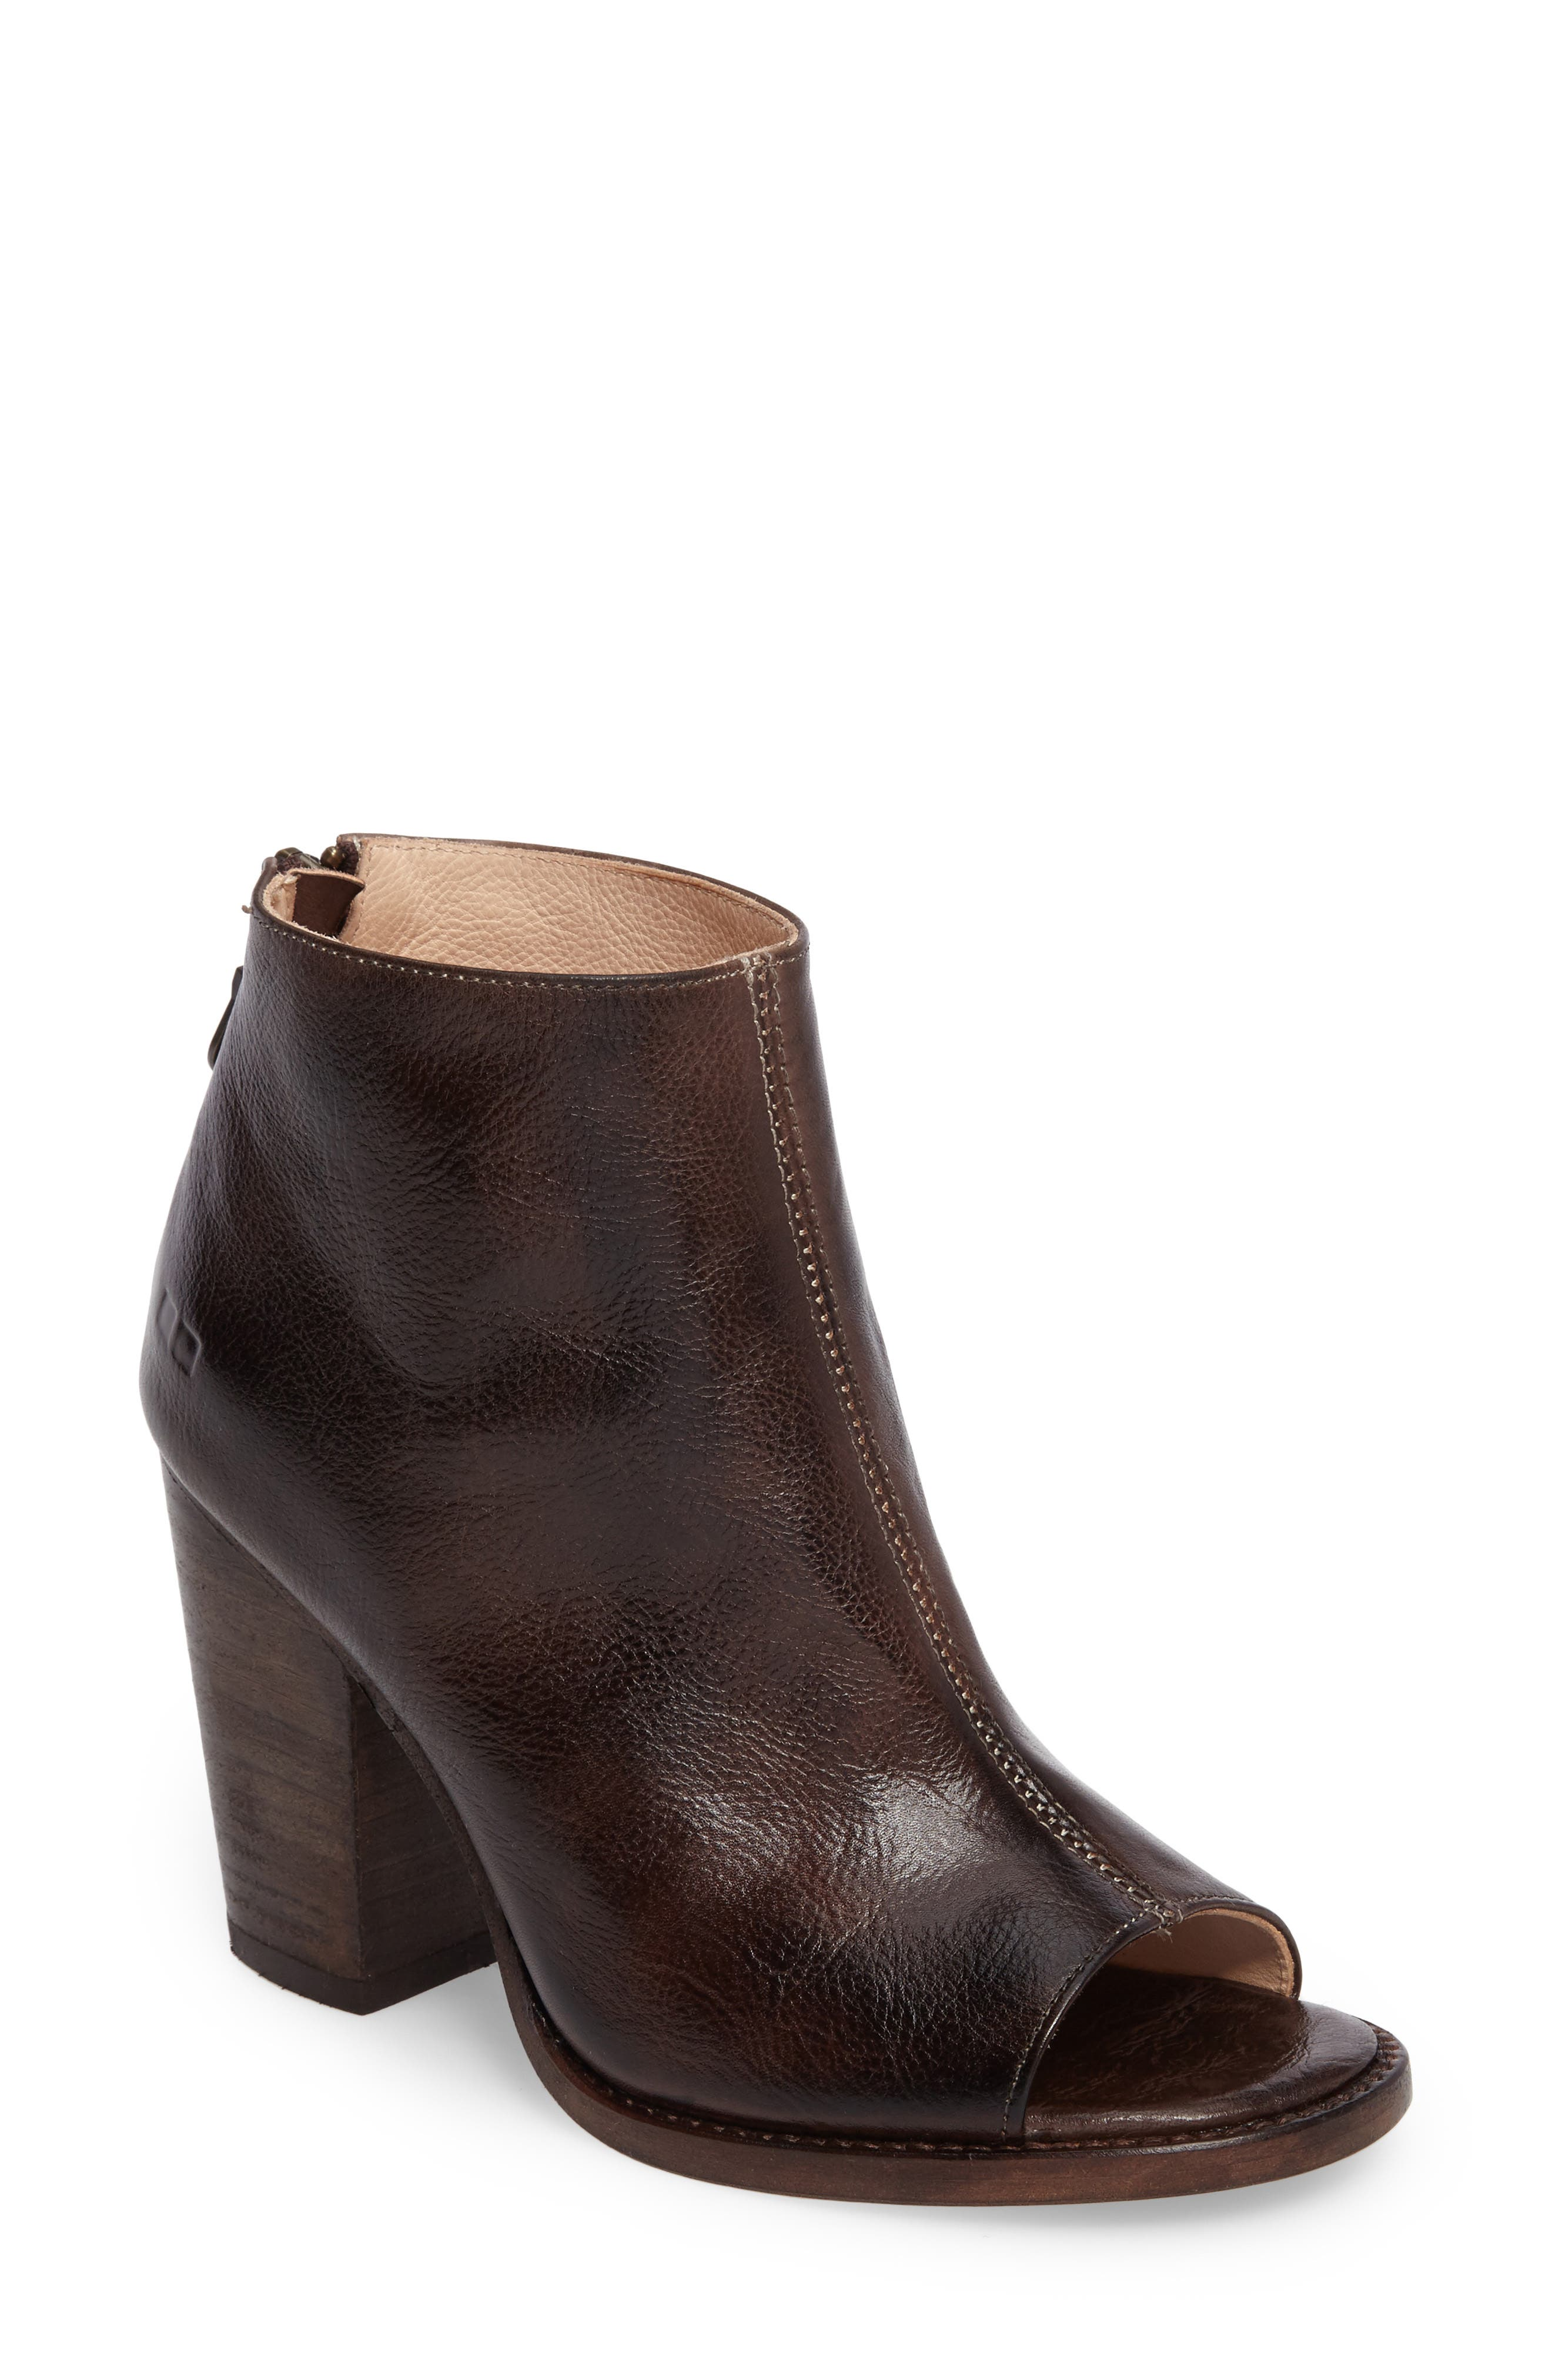 'Onset' Peep Toe Bootie, Main, color, 201